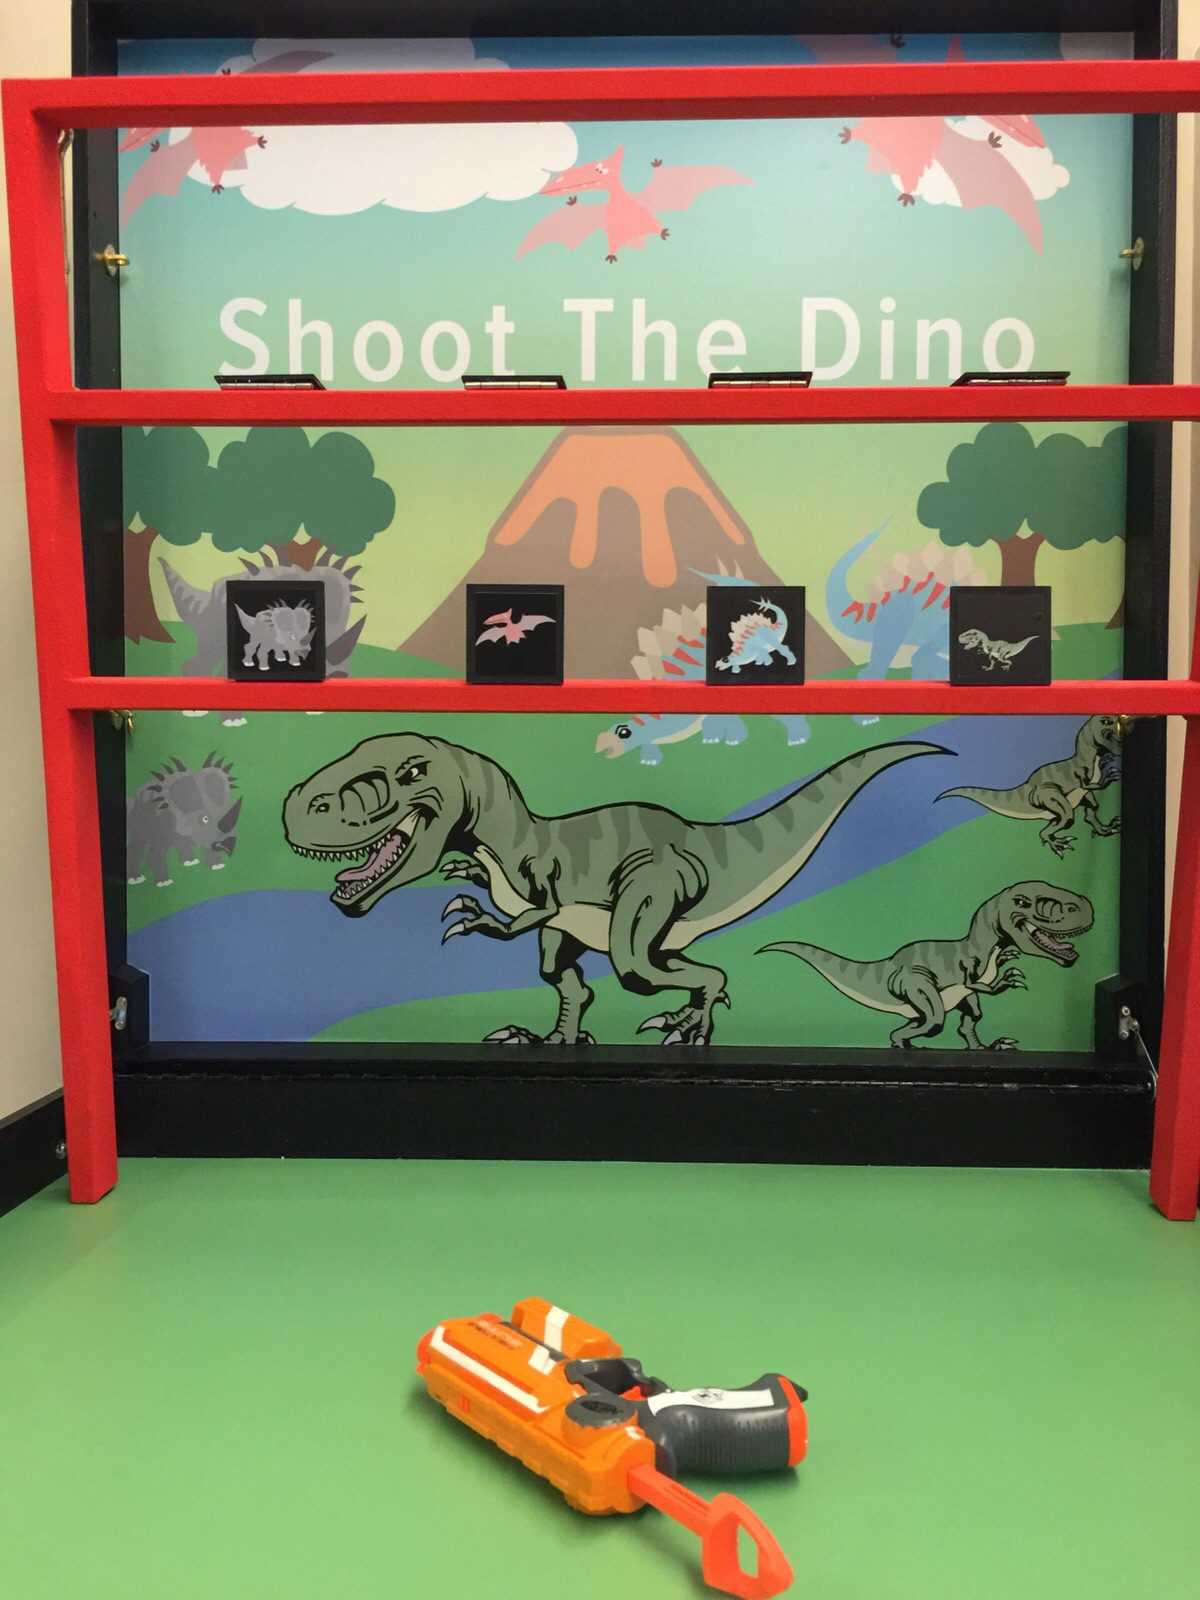 Shoot the Dino